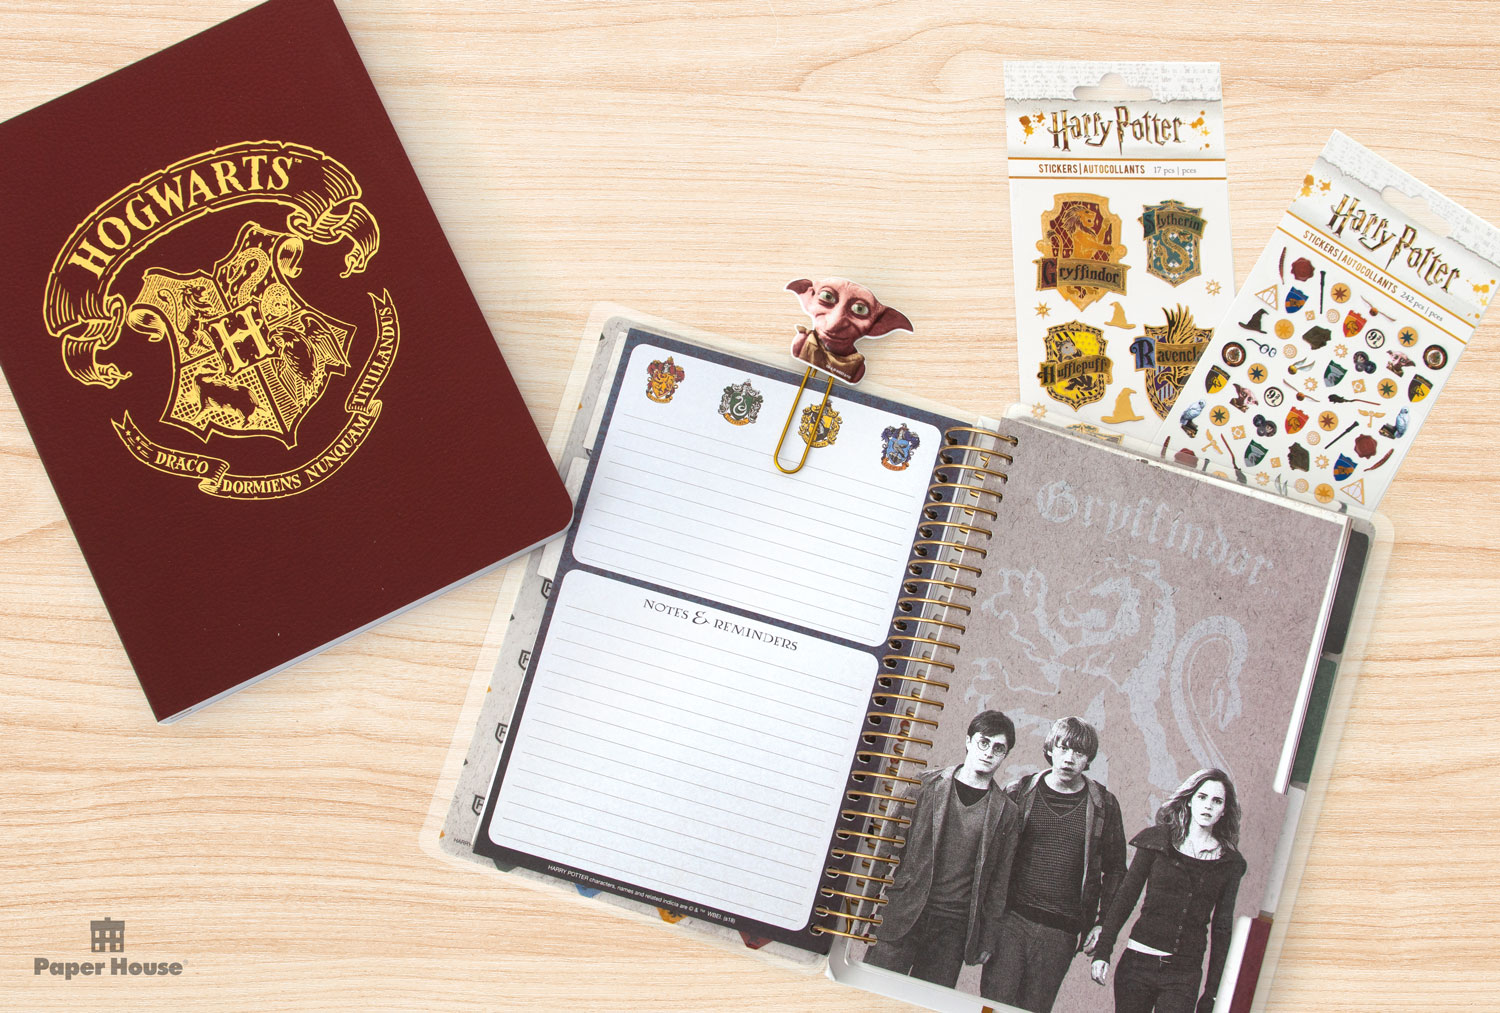 Paper House Productions – Hogwarts journal planner stickers